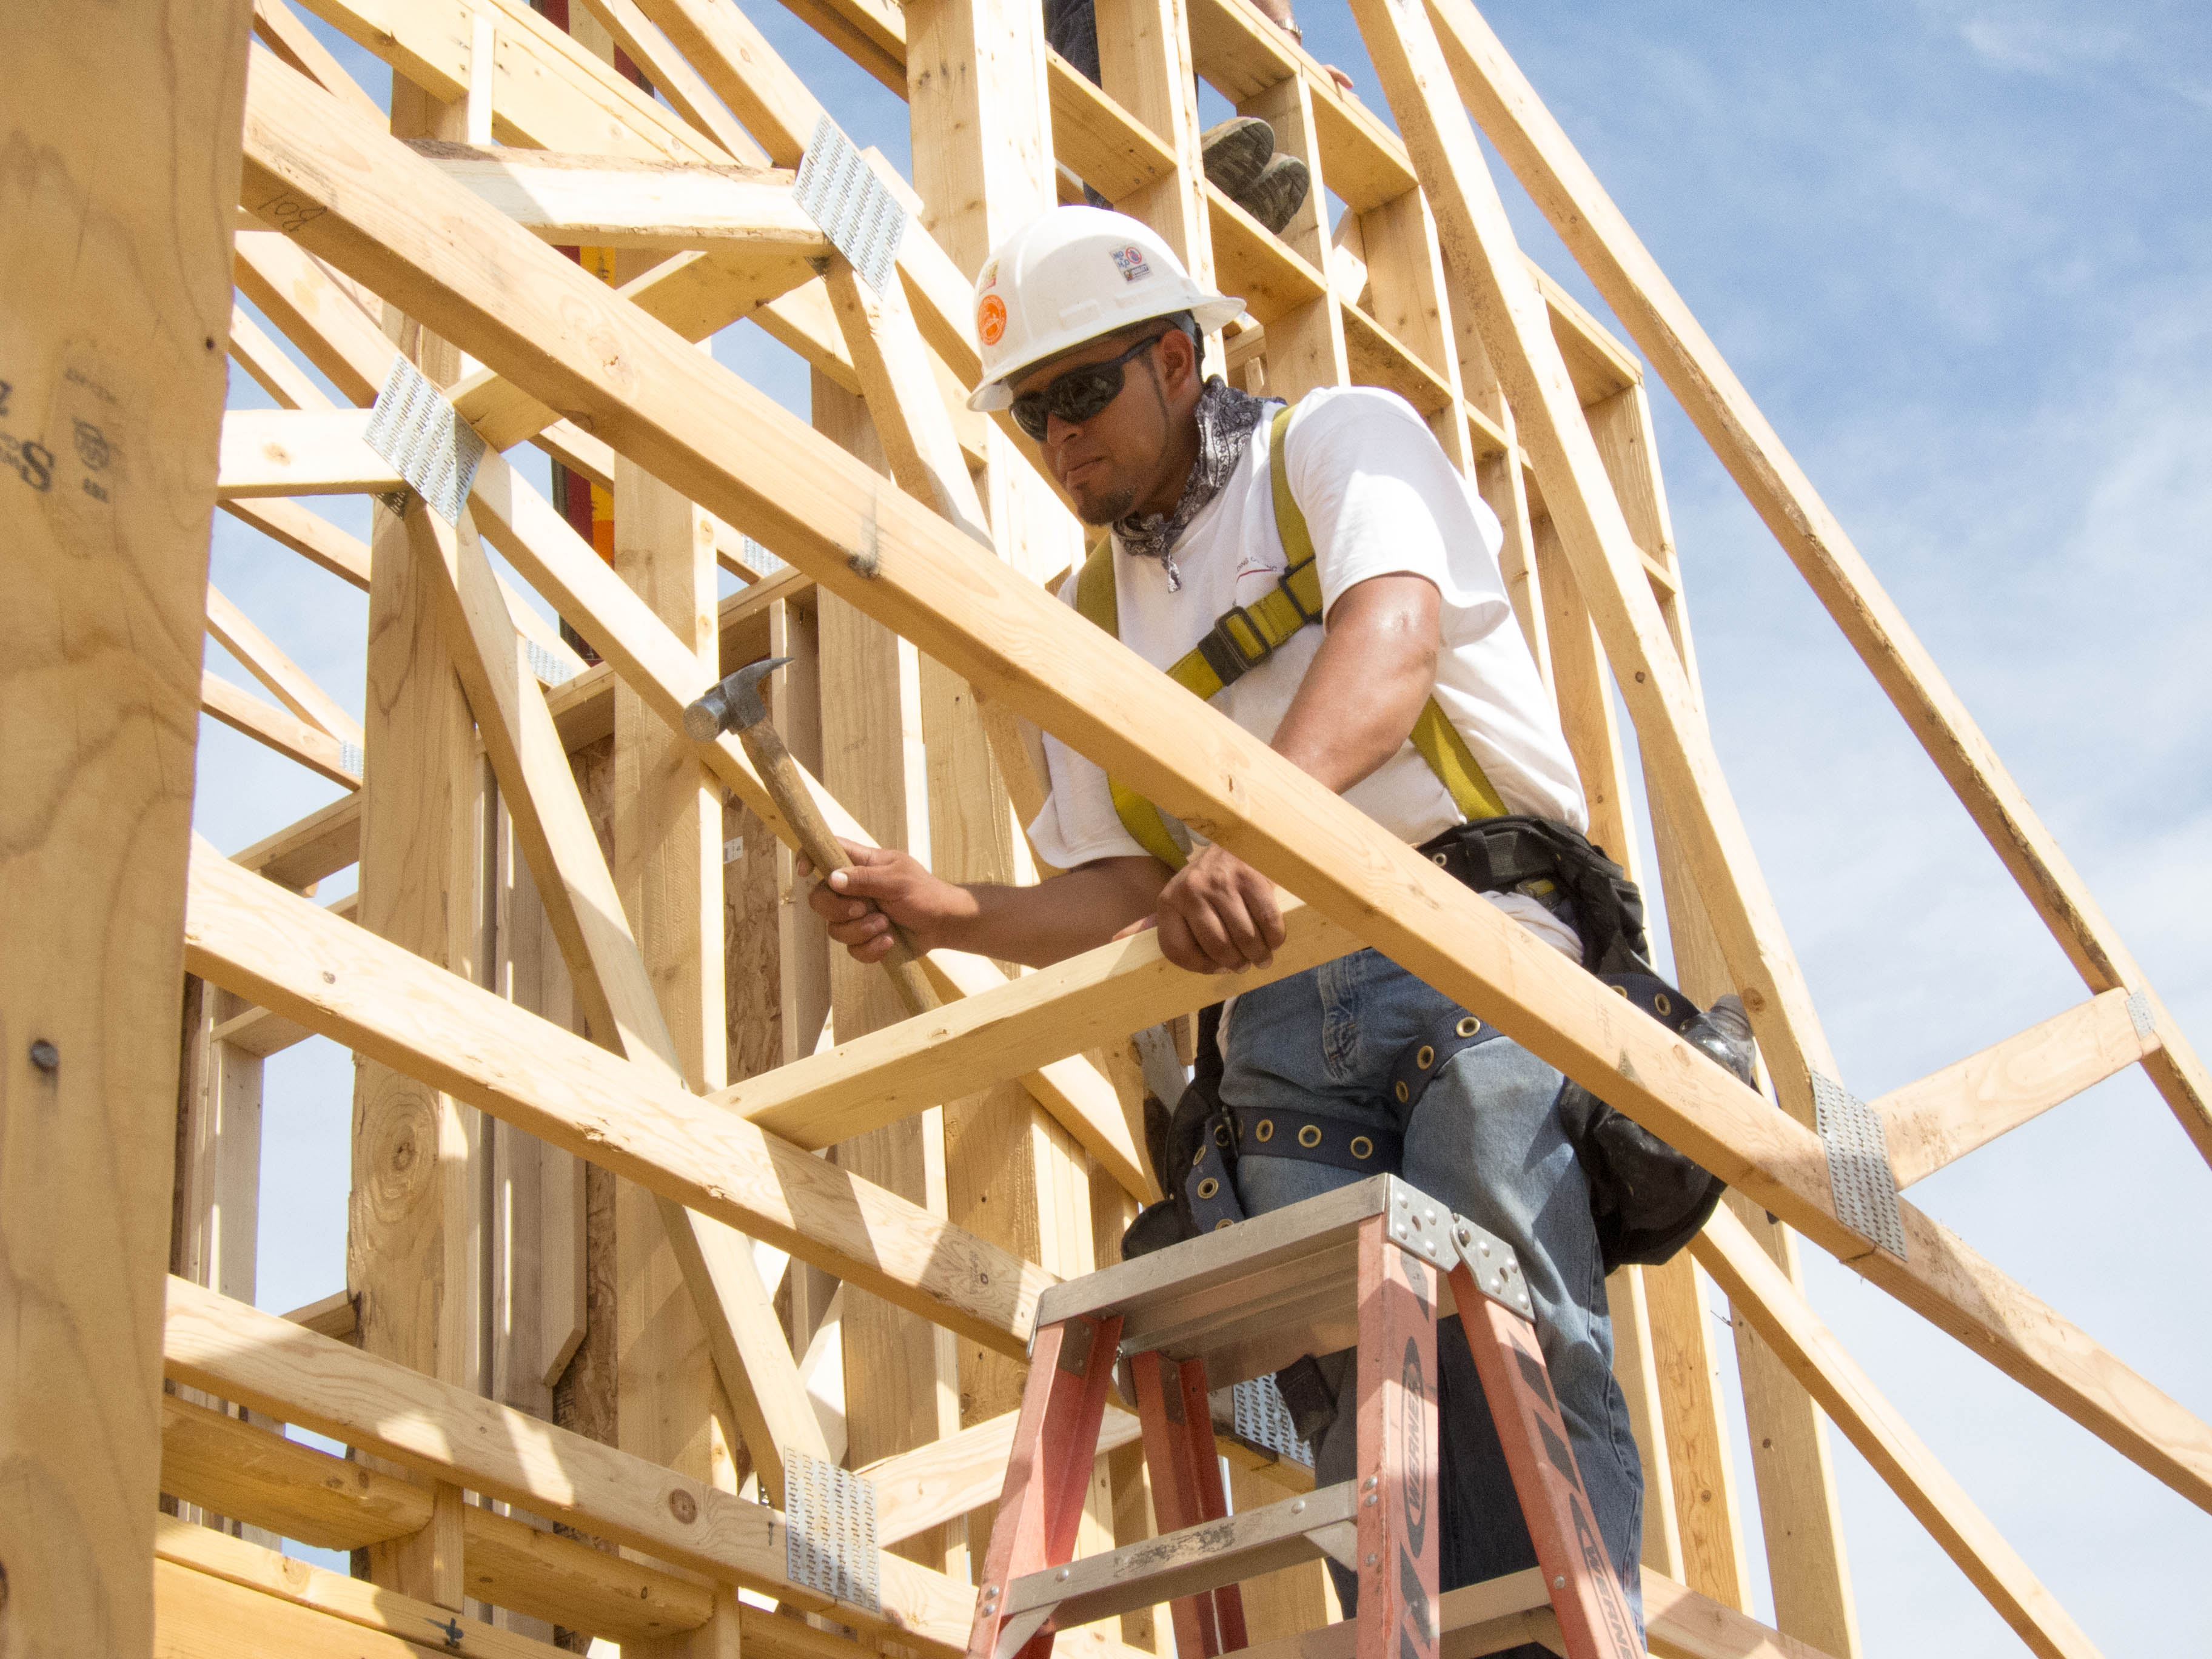 Building system trading and contracting